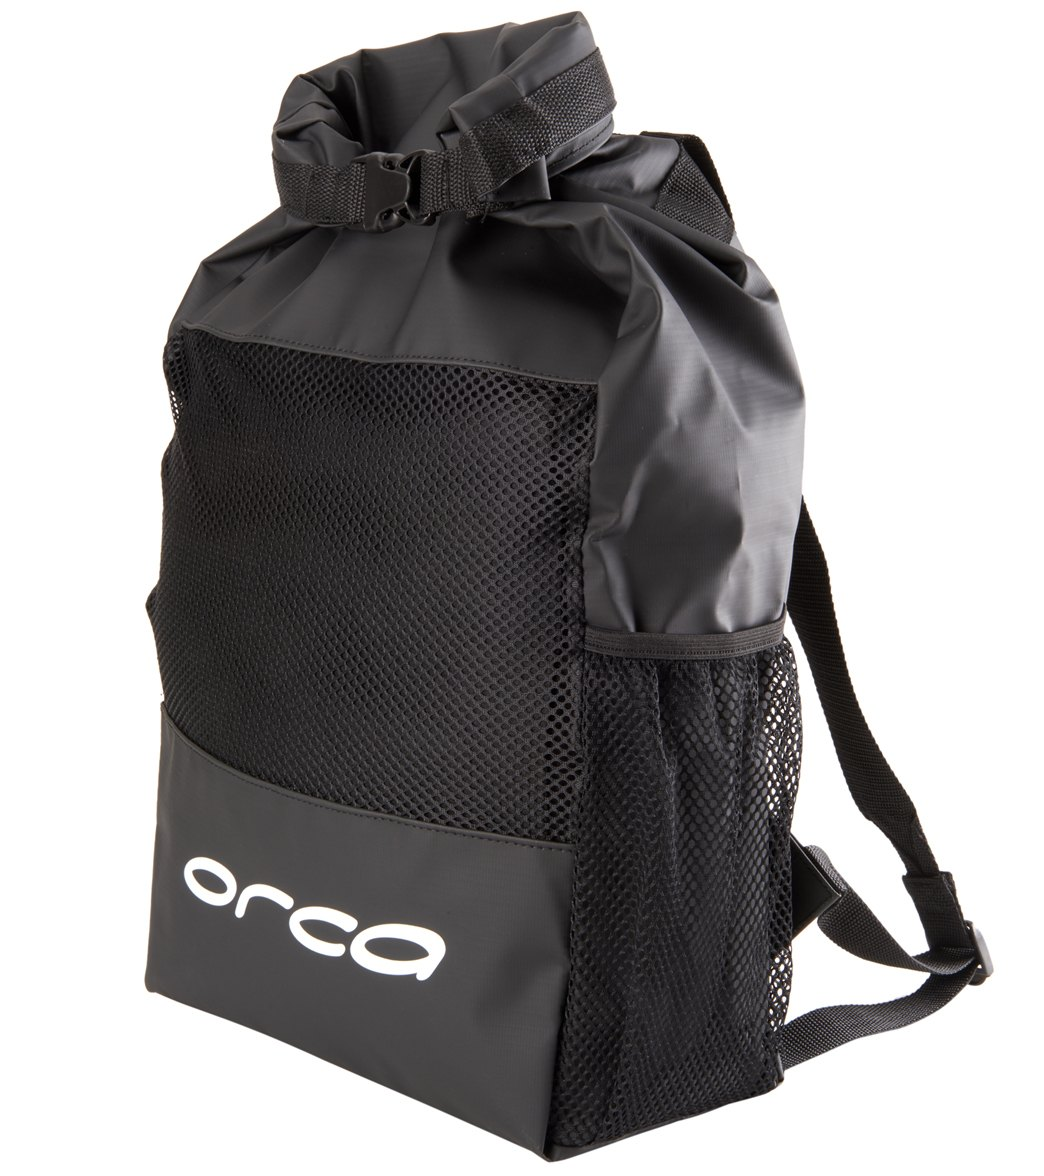 14c599e6081a Wolff-Wear - Orca Mesh backpack wet suit bag